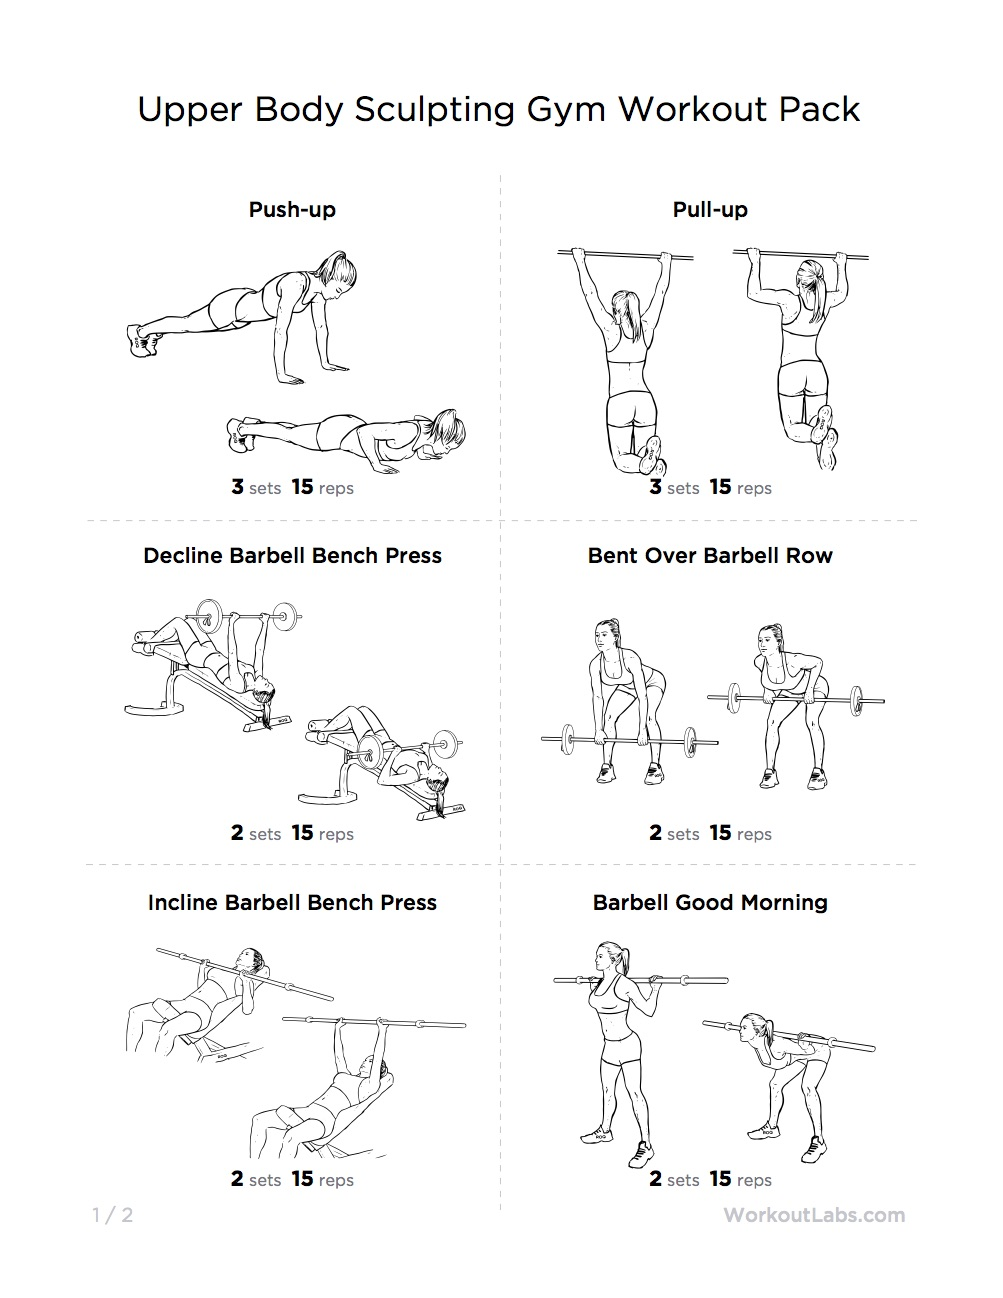 Upper Body Workouts For Menweight Loss Patches Ukmeals To Lose Weight In 2 Weeks